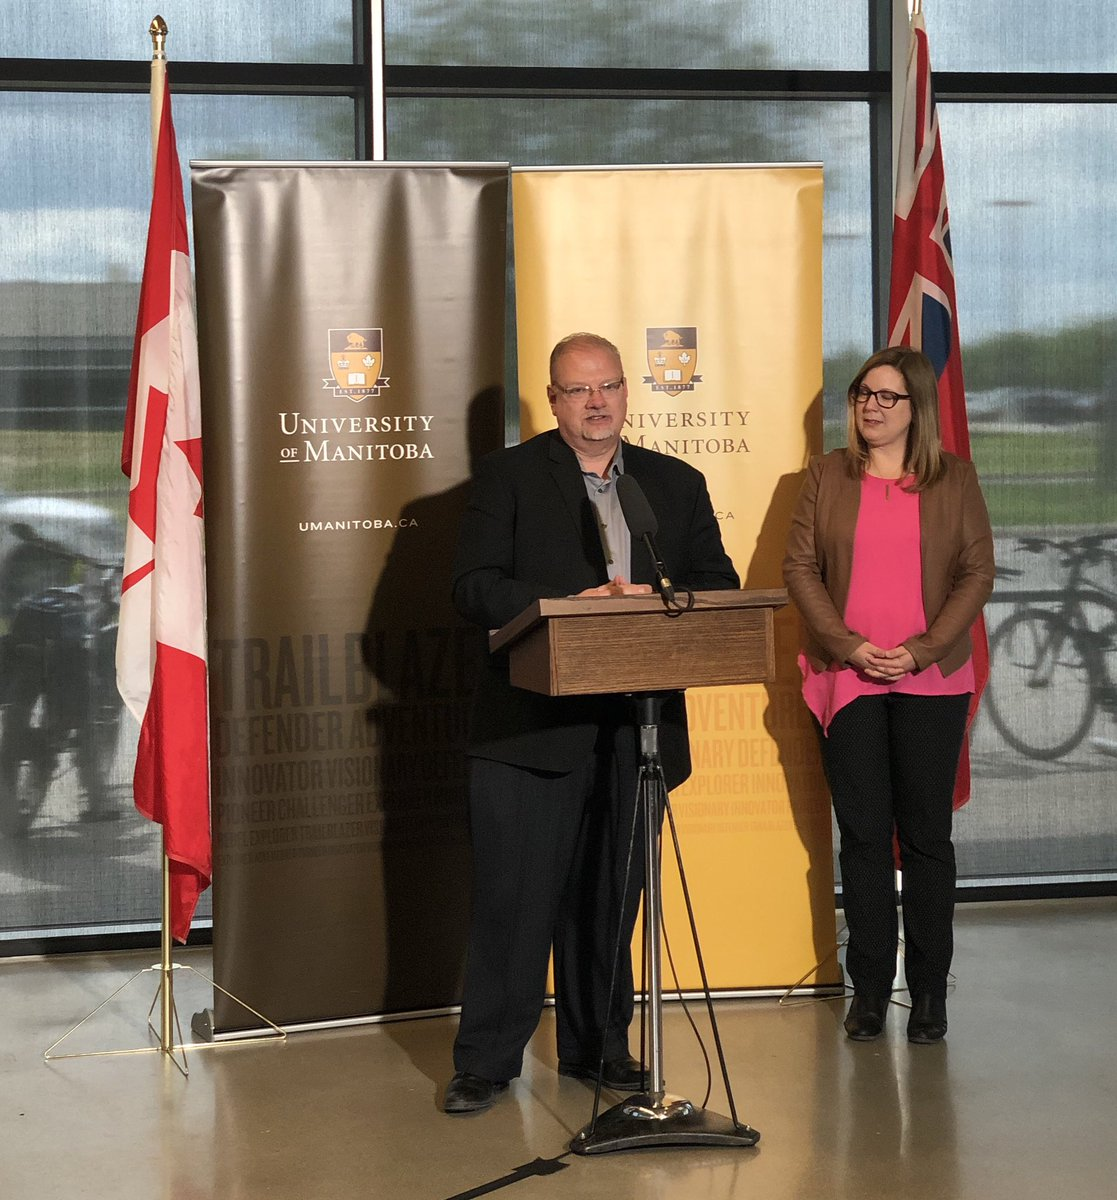 test Twitter Media - At the University of Manitoba this afternoon with @SGuillemardMLA to announce $2.5 million of funding for the Leadership Institute to help train the future leaders of our province. #MBPoli https://t.co/vKtzVJ0Grk